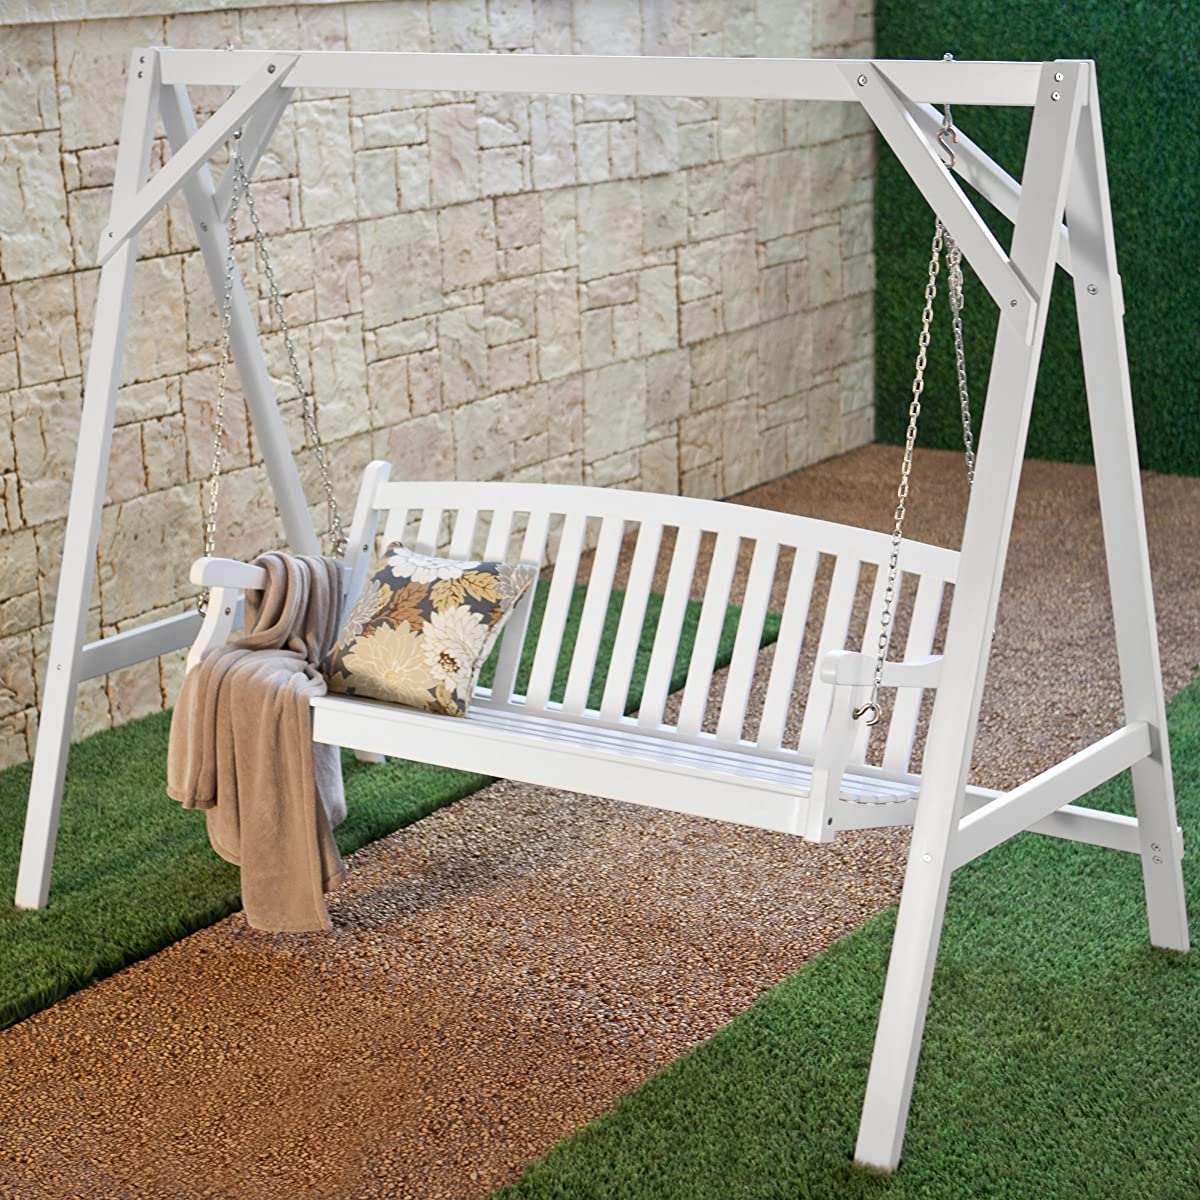 Patio Swing for Two Persons Wood Durable White Finish Coral Coast Pleasant Bay All Weather Curved Back Porch 4 Ft. Outdoor Seating